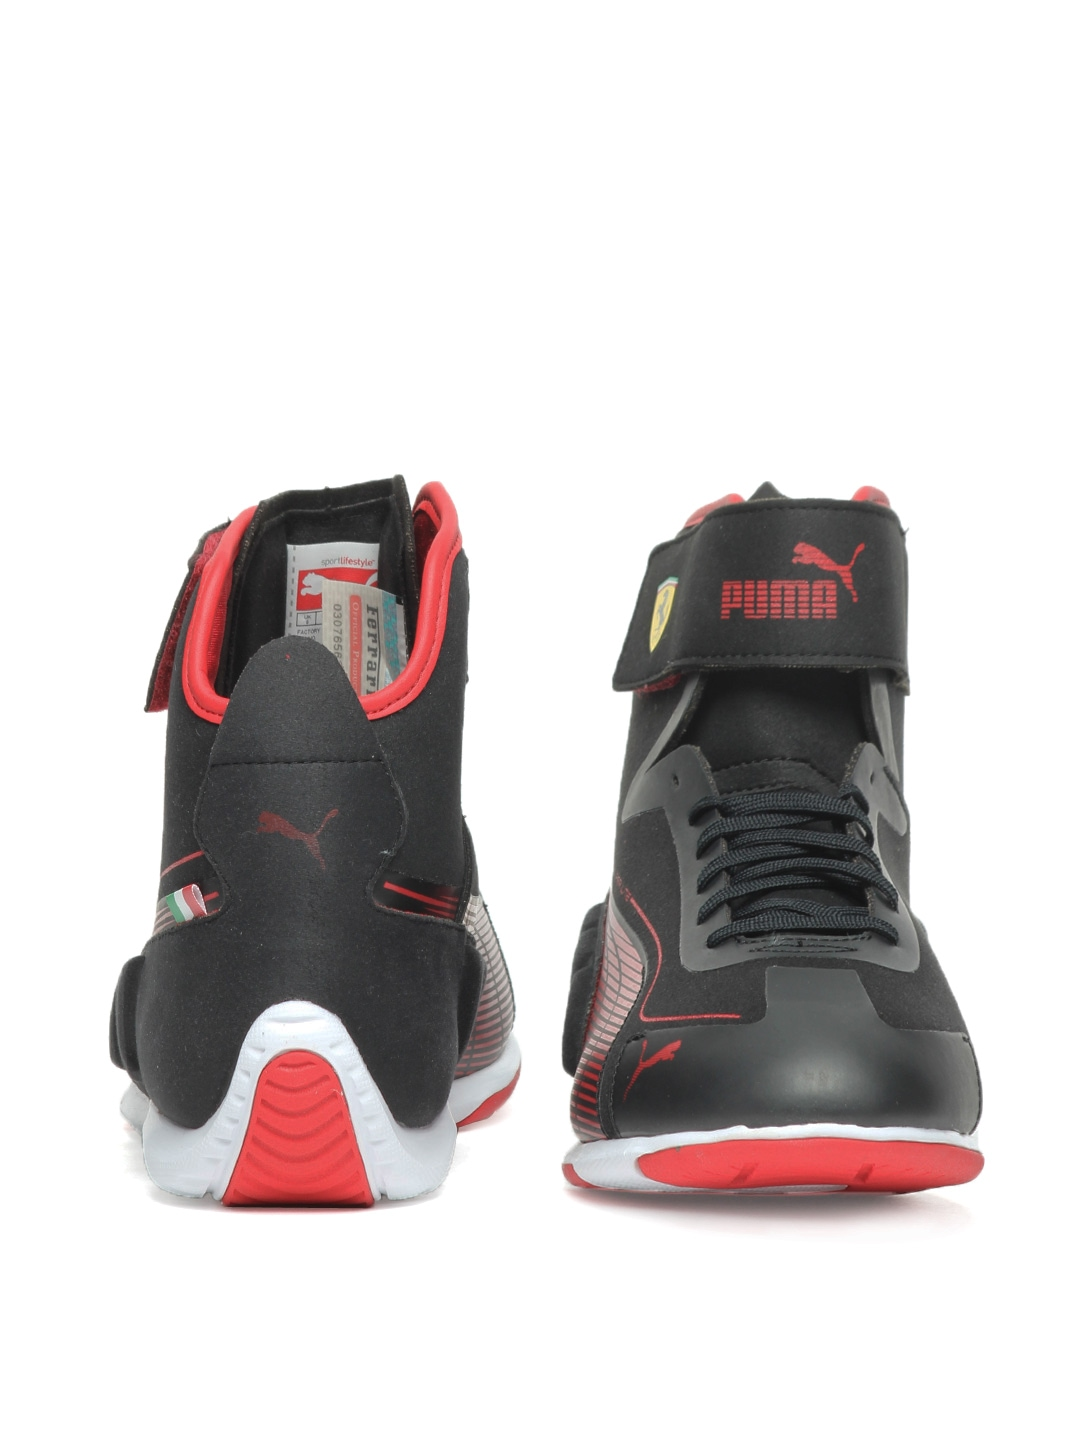 puma ferrari shoes 2015 men cheap   OFF46% Discounted cf5752be5